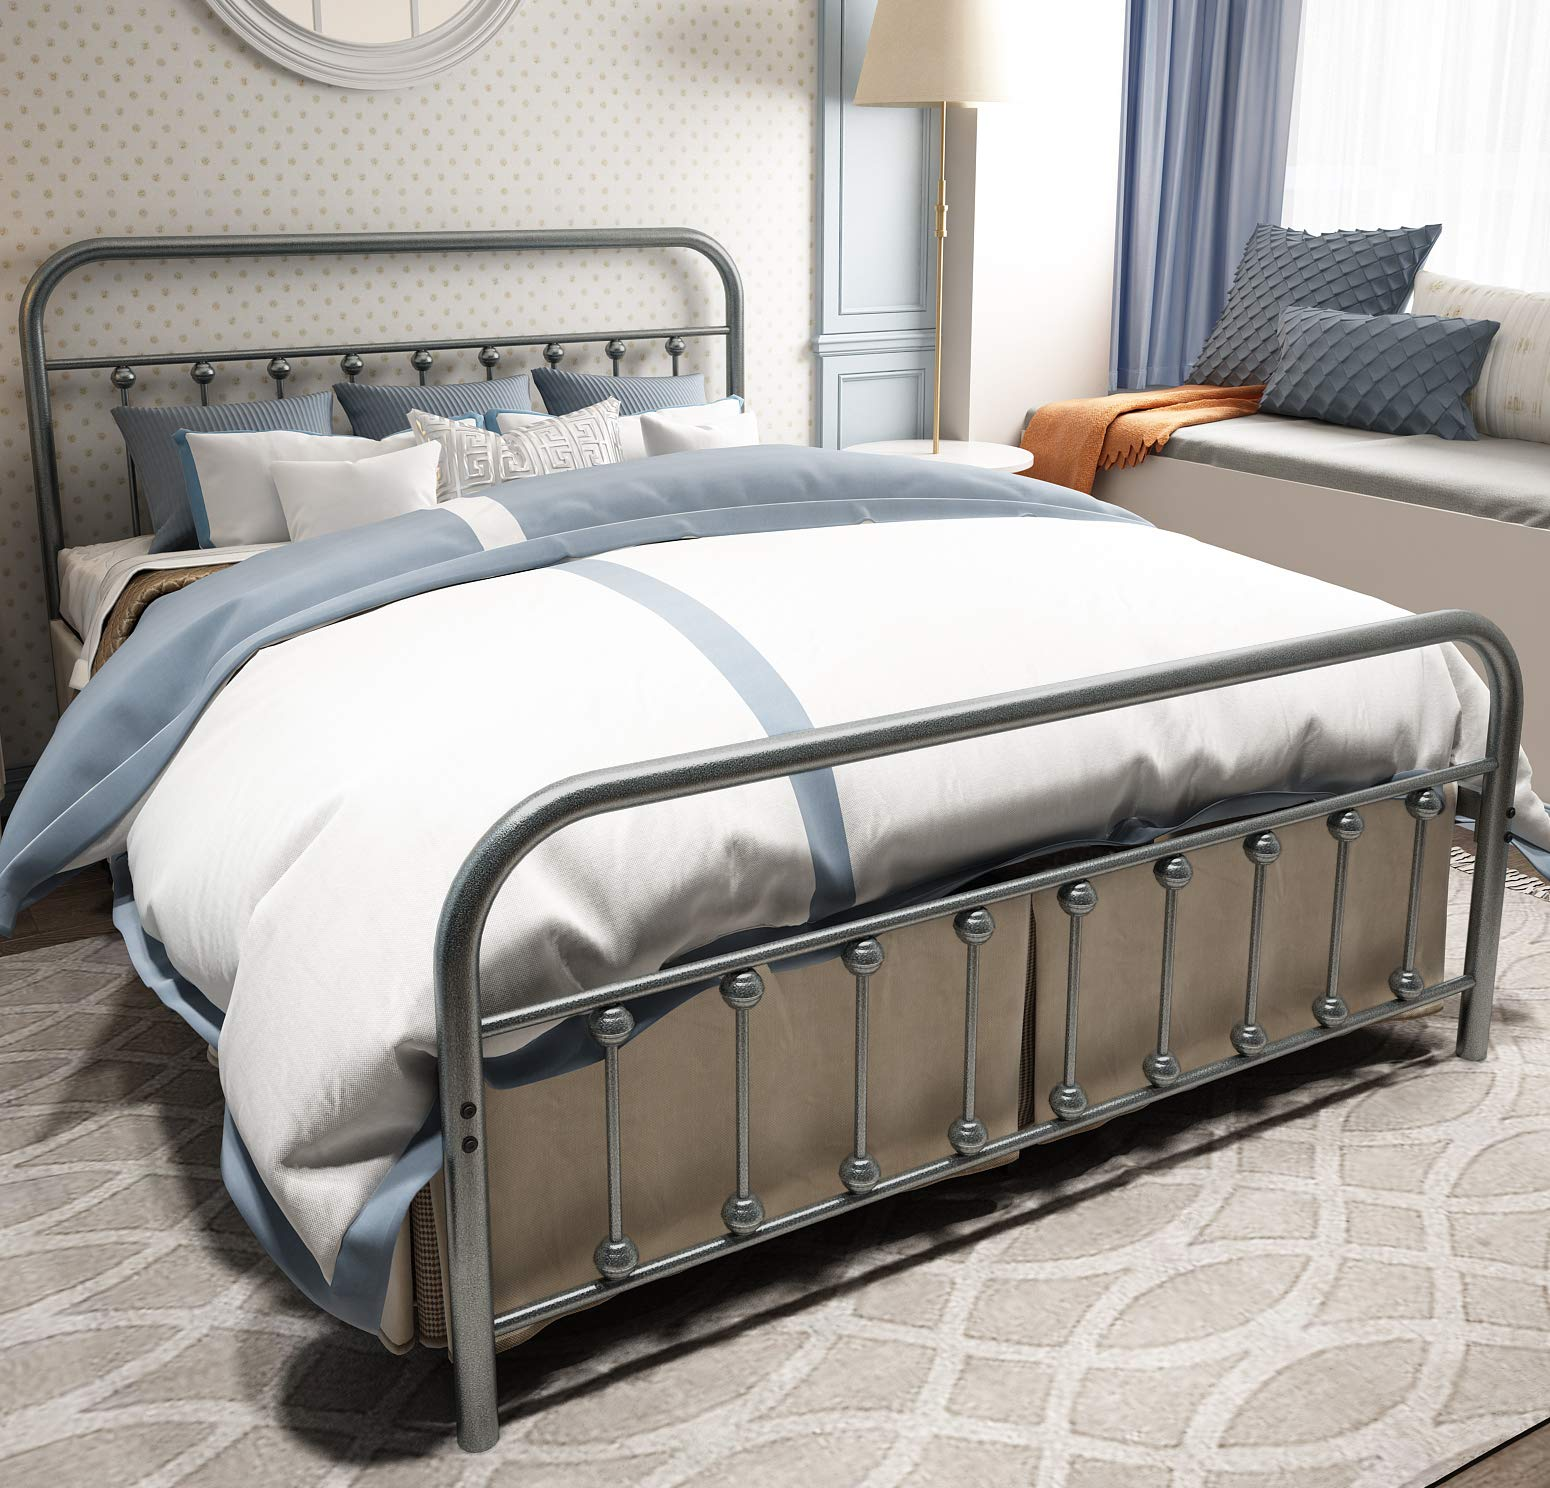 TEMMER Metal Bed Frame Queen Size with Headboard and Footboard Single Platform Mattress Base,Metal Tube and Iron-Art Double Bed Gray Silver.